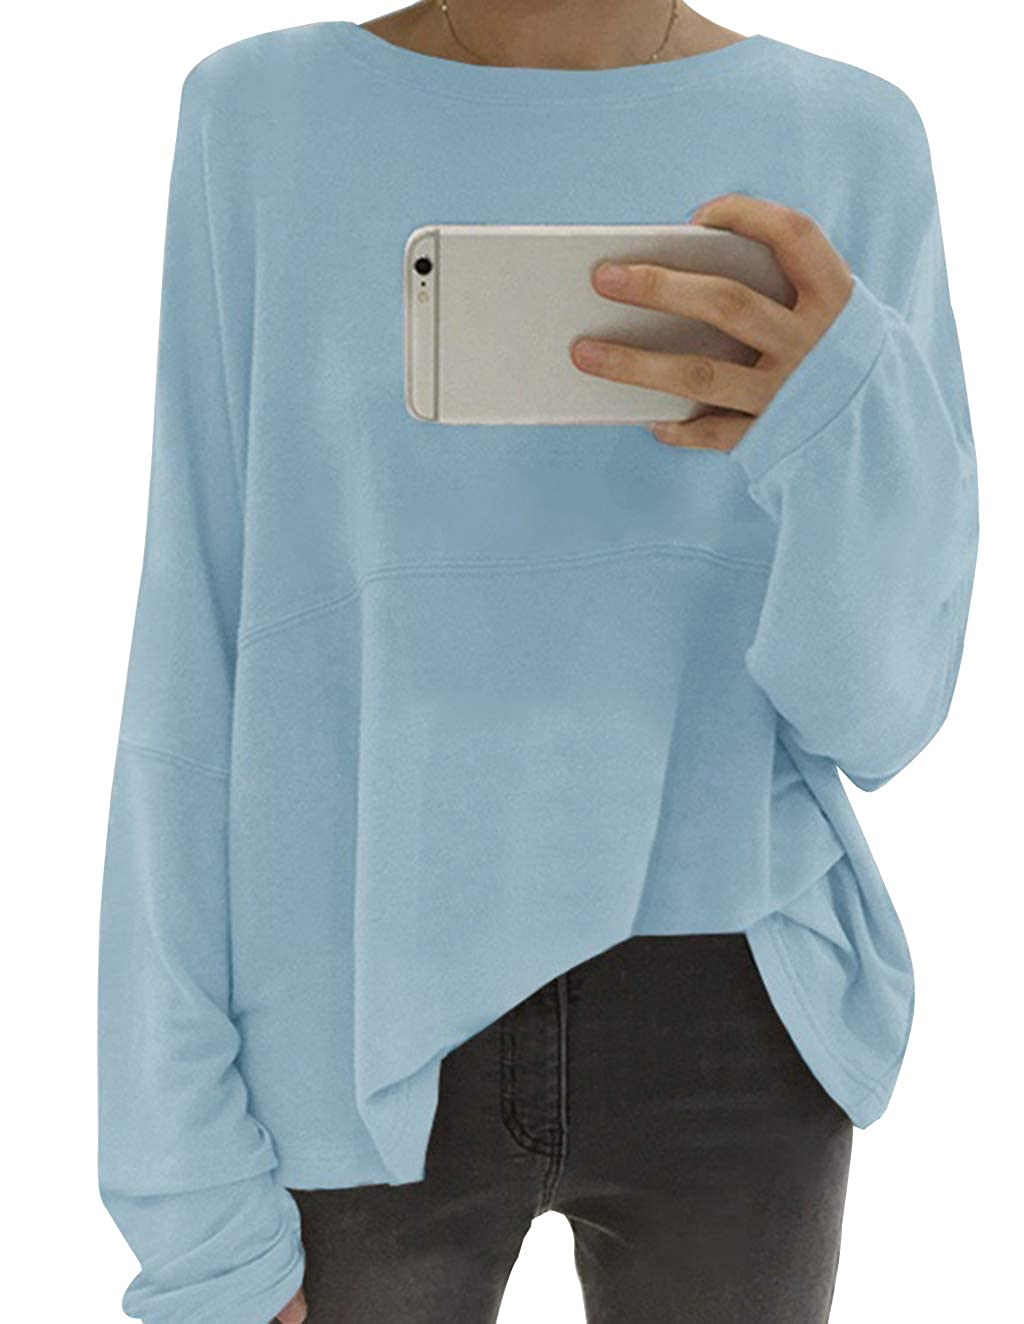 Sale Clearance Womens Loose Oversized Long Sleeve T-Shirt Ladies Plus Size Tunic Tops Casual Baggy Solid Color Blouse Jumpers Top Plain Basic Shirt Sweatshirt Sweater Pullover